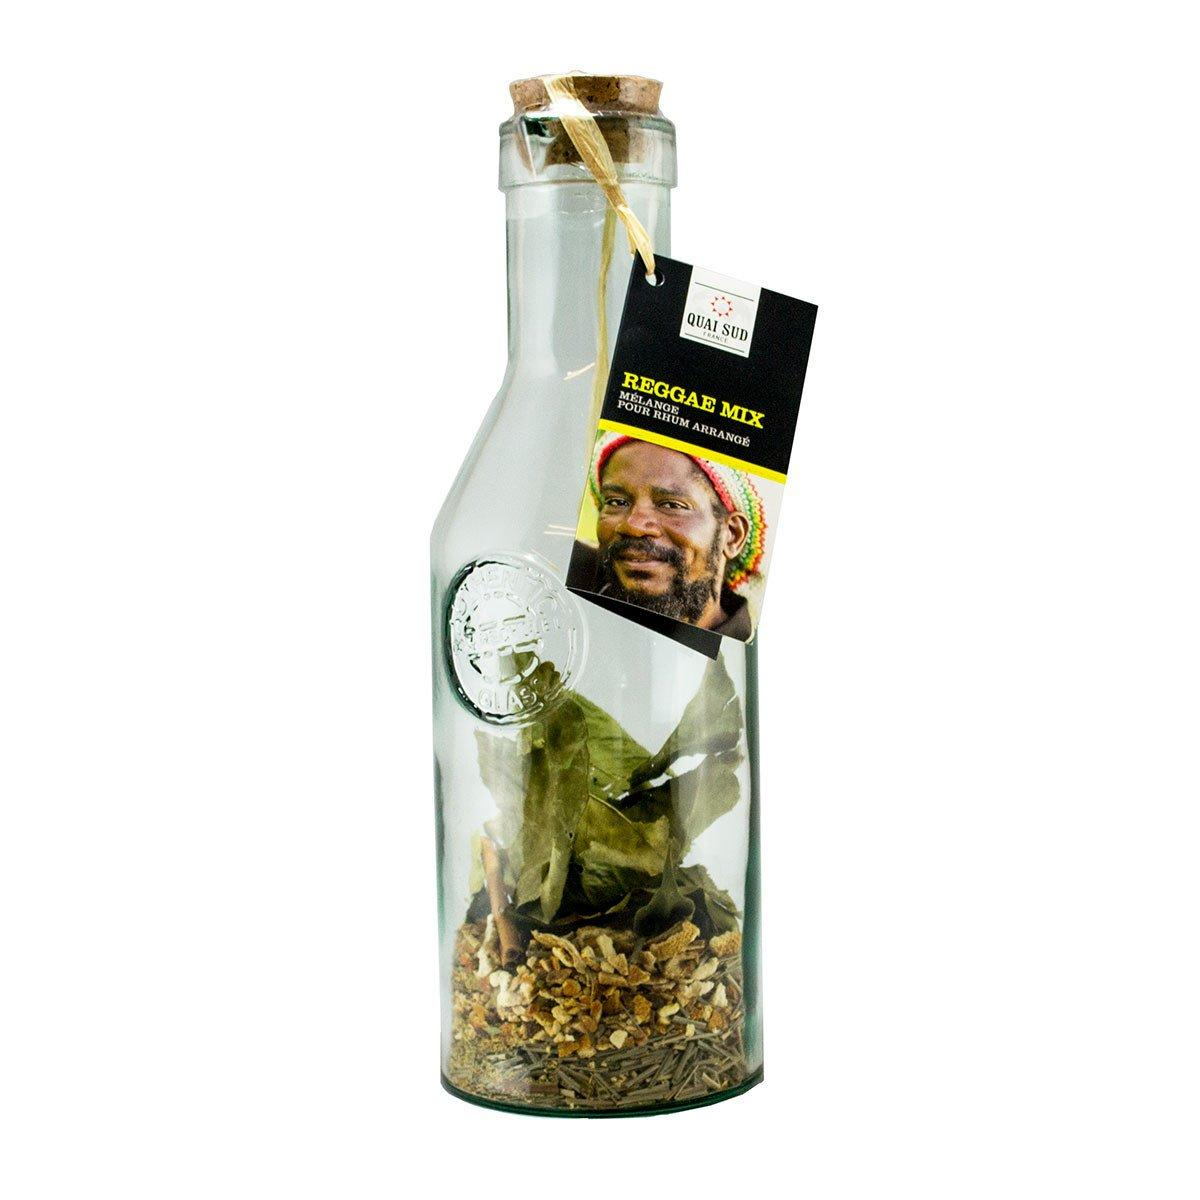 Reggae Rum - Carafe Cocktail Mix - Only £16.99